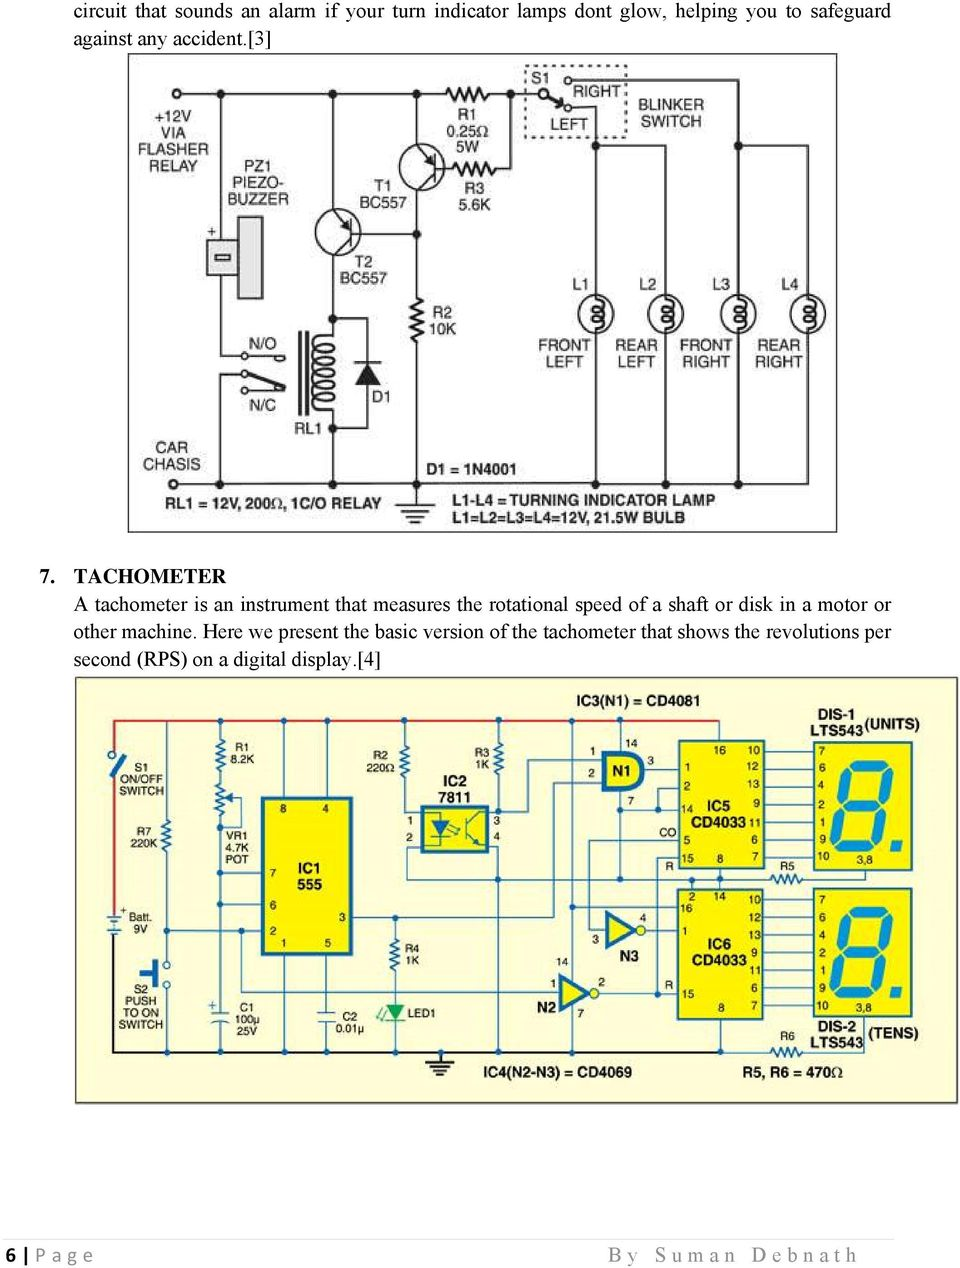 270 Mini Electronics Project With Circuit Diagram Pdf 10 Step Relay Selector Switch Electronic Projects Tachometer A Is An Instrument That Measures The Rotational Speed Of Shaft Or Disk